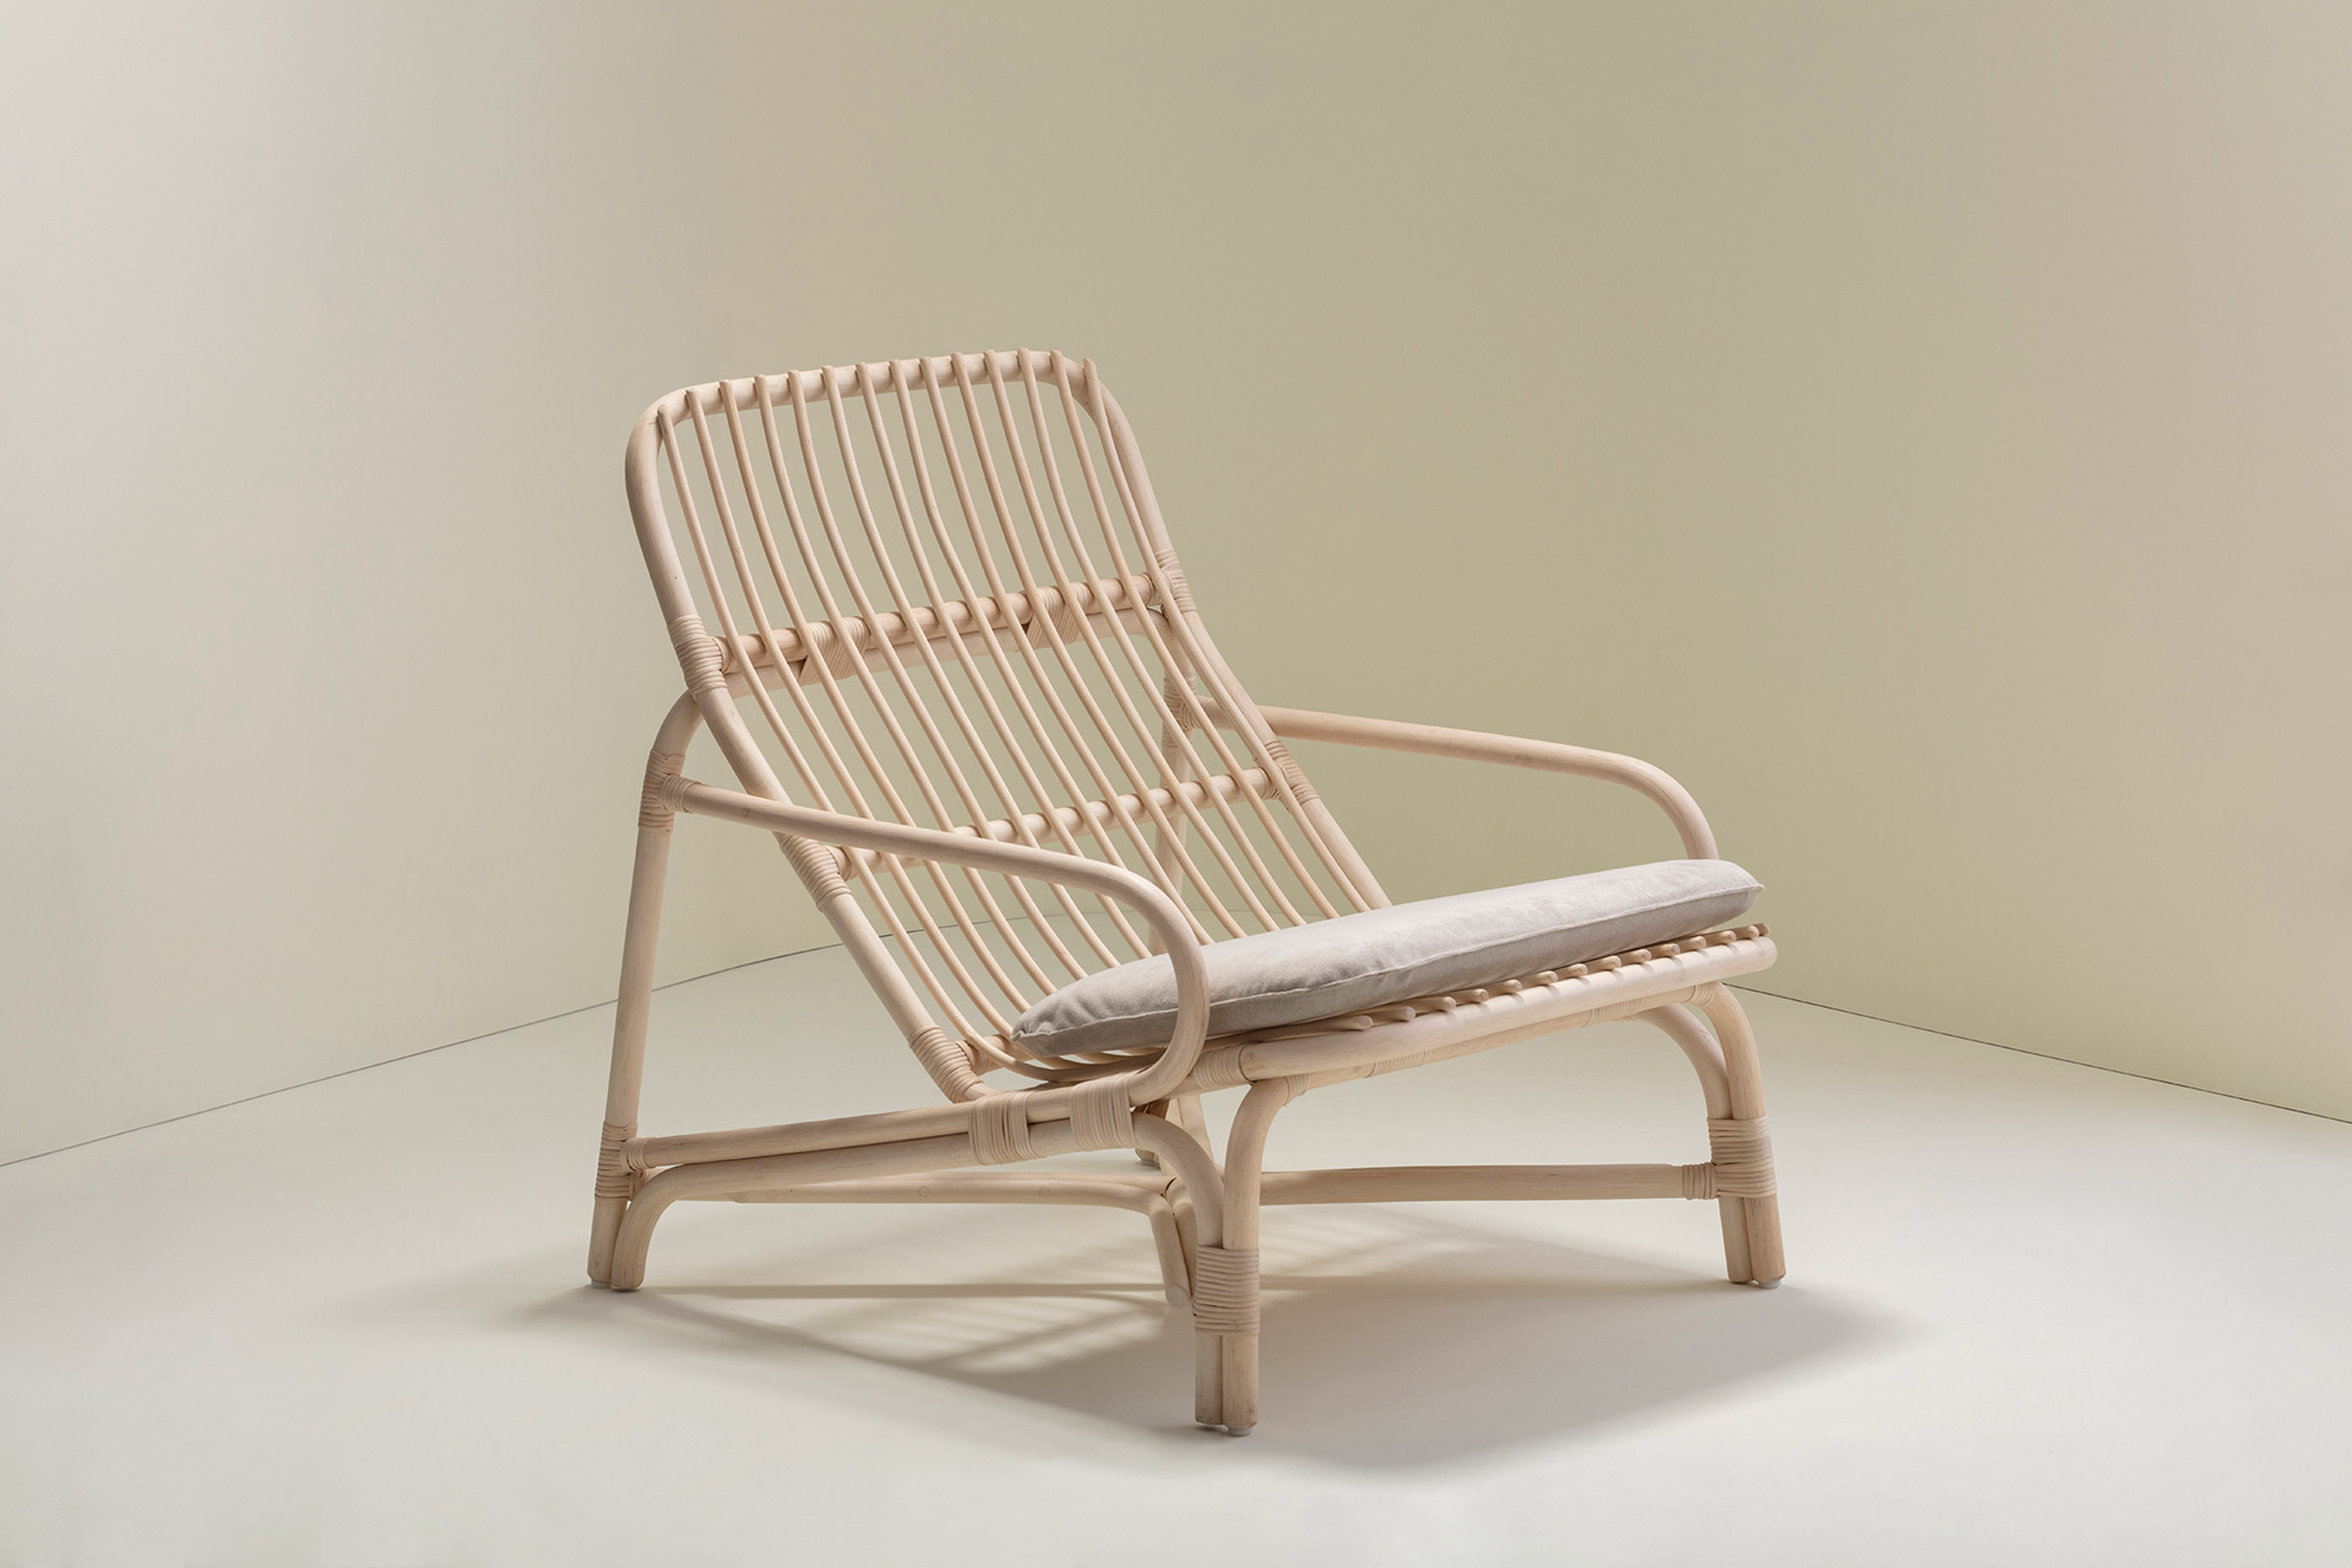 Lounge chair in rattan by Christian Vivanco for Balsa